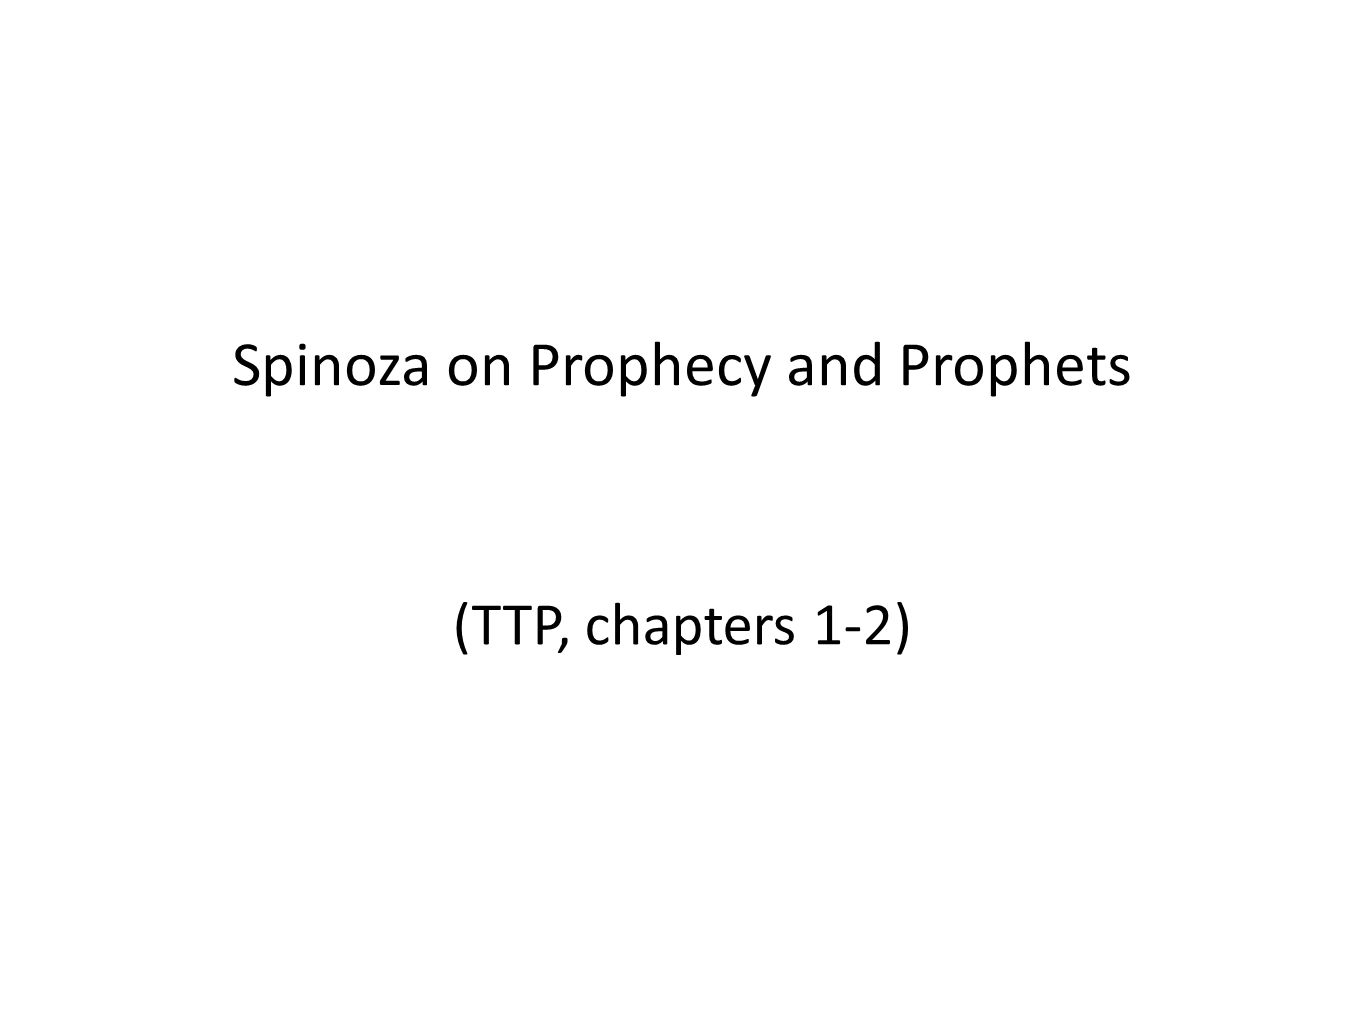 Spinoza on Prophecy and Prophets (TTP, chapters 1-2)